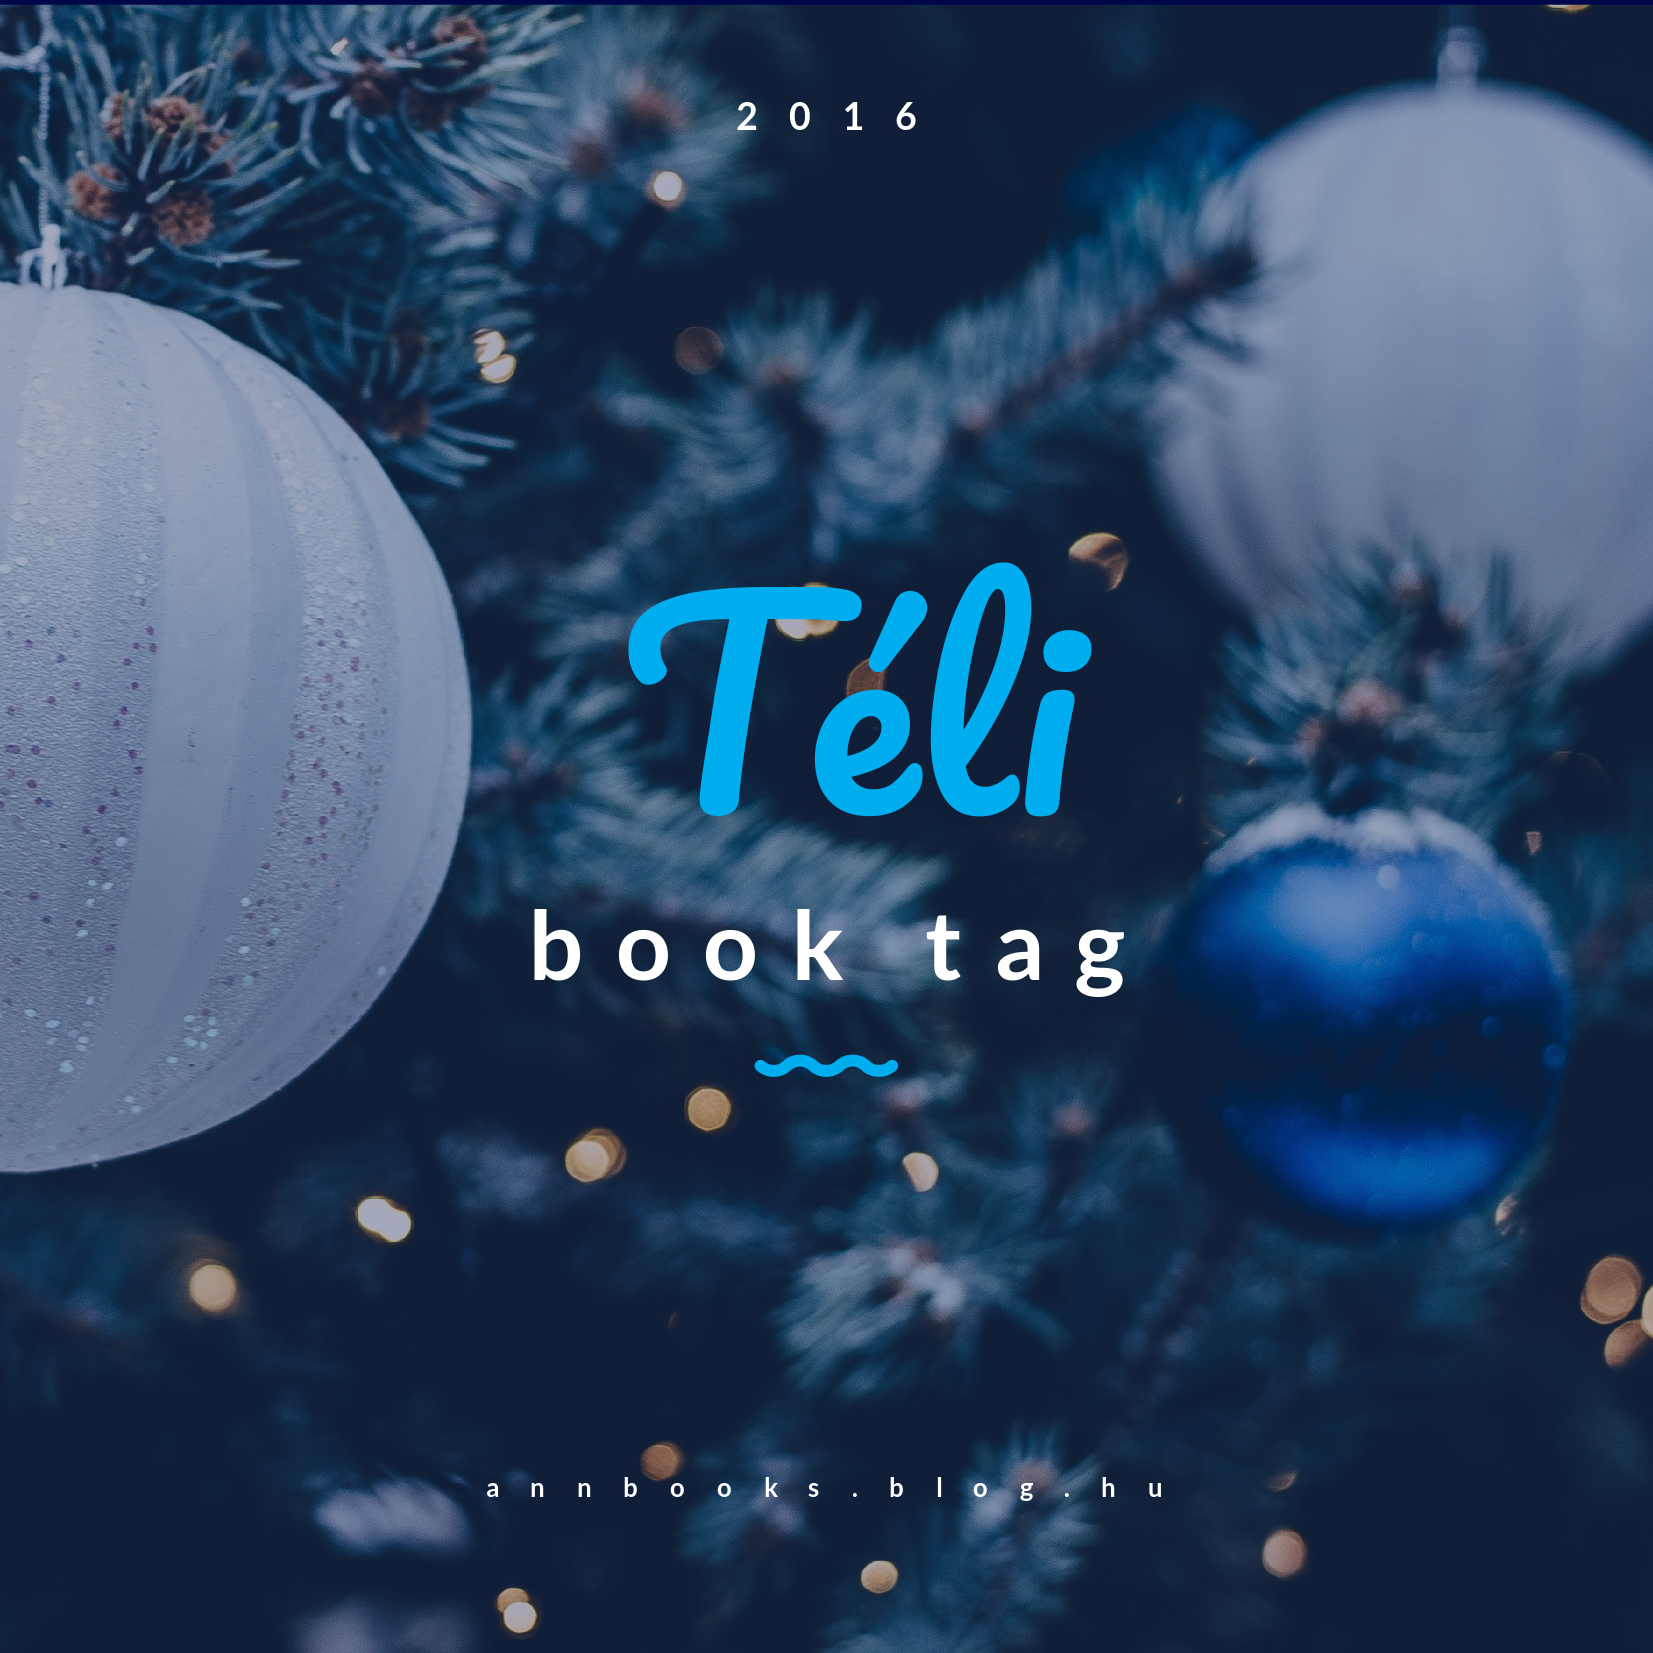 book_tag_friday_21.jpg